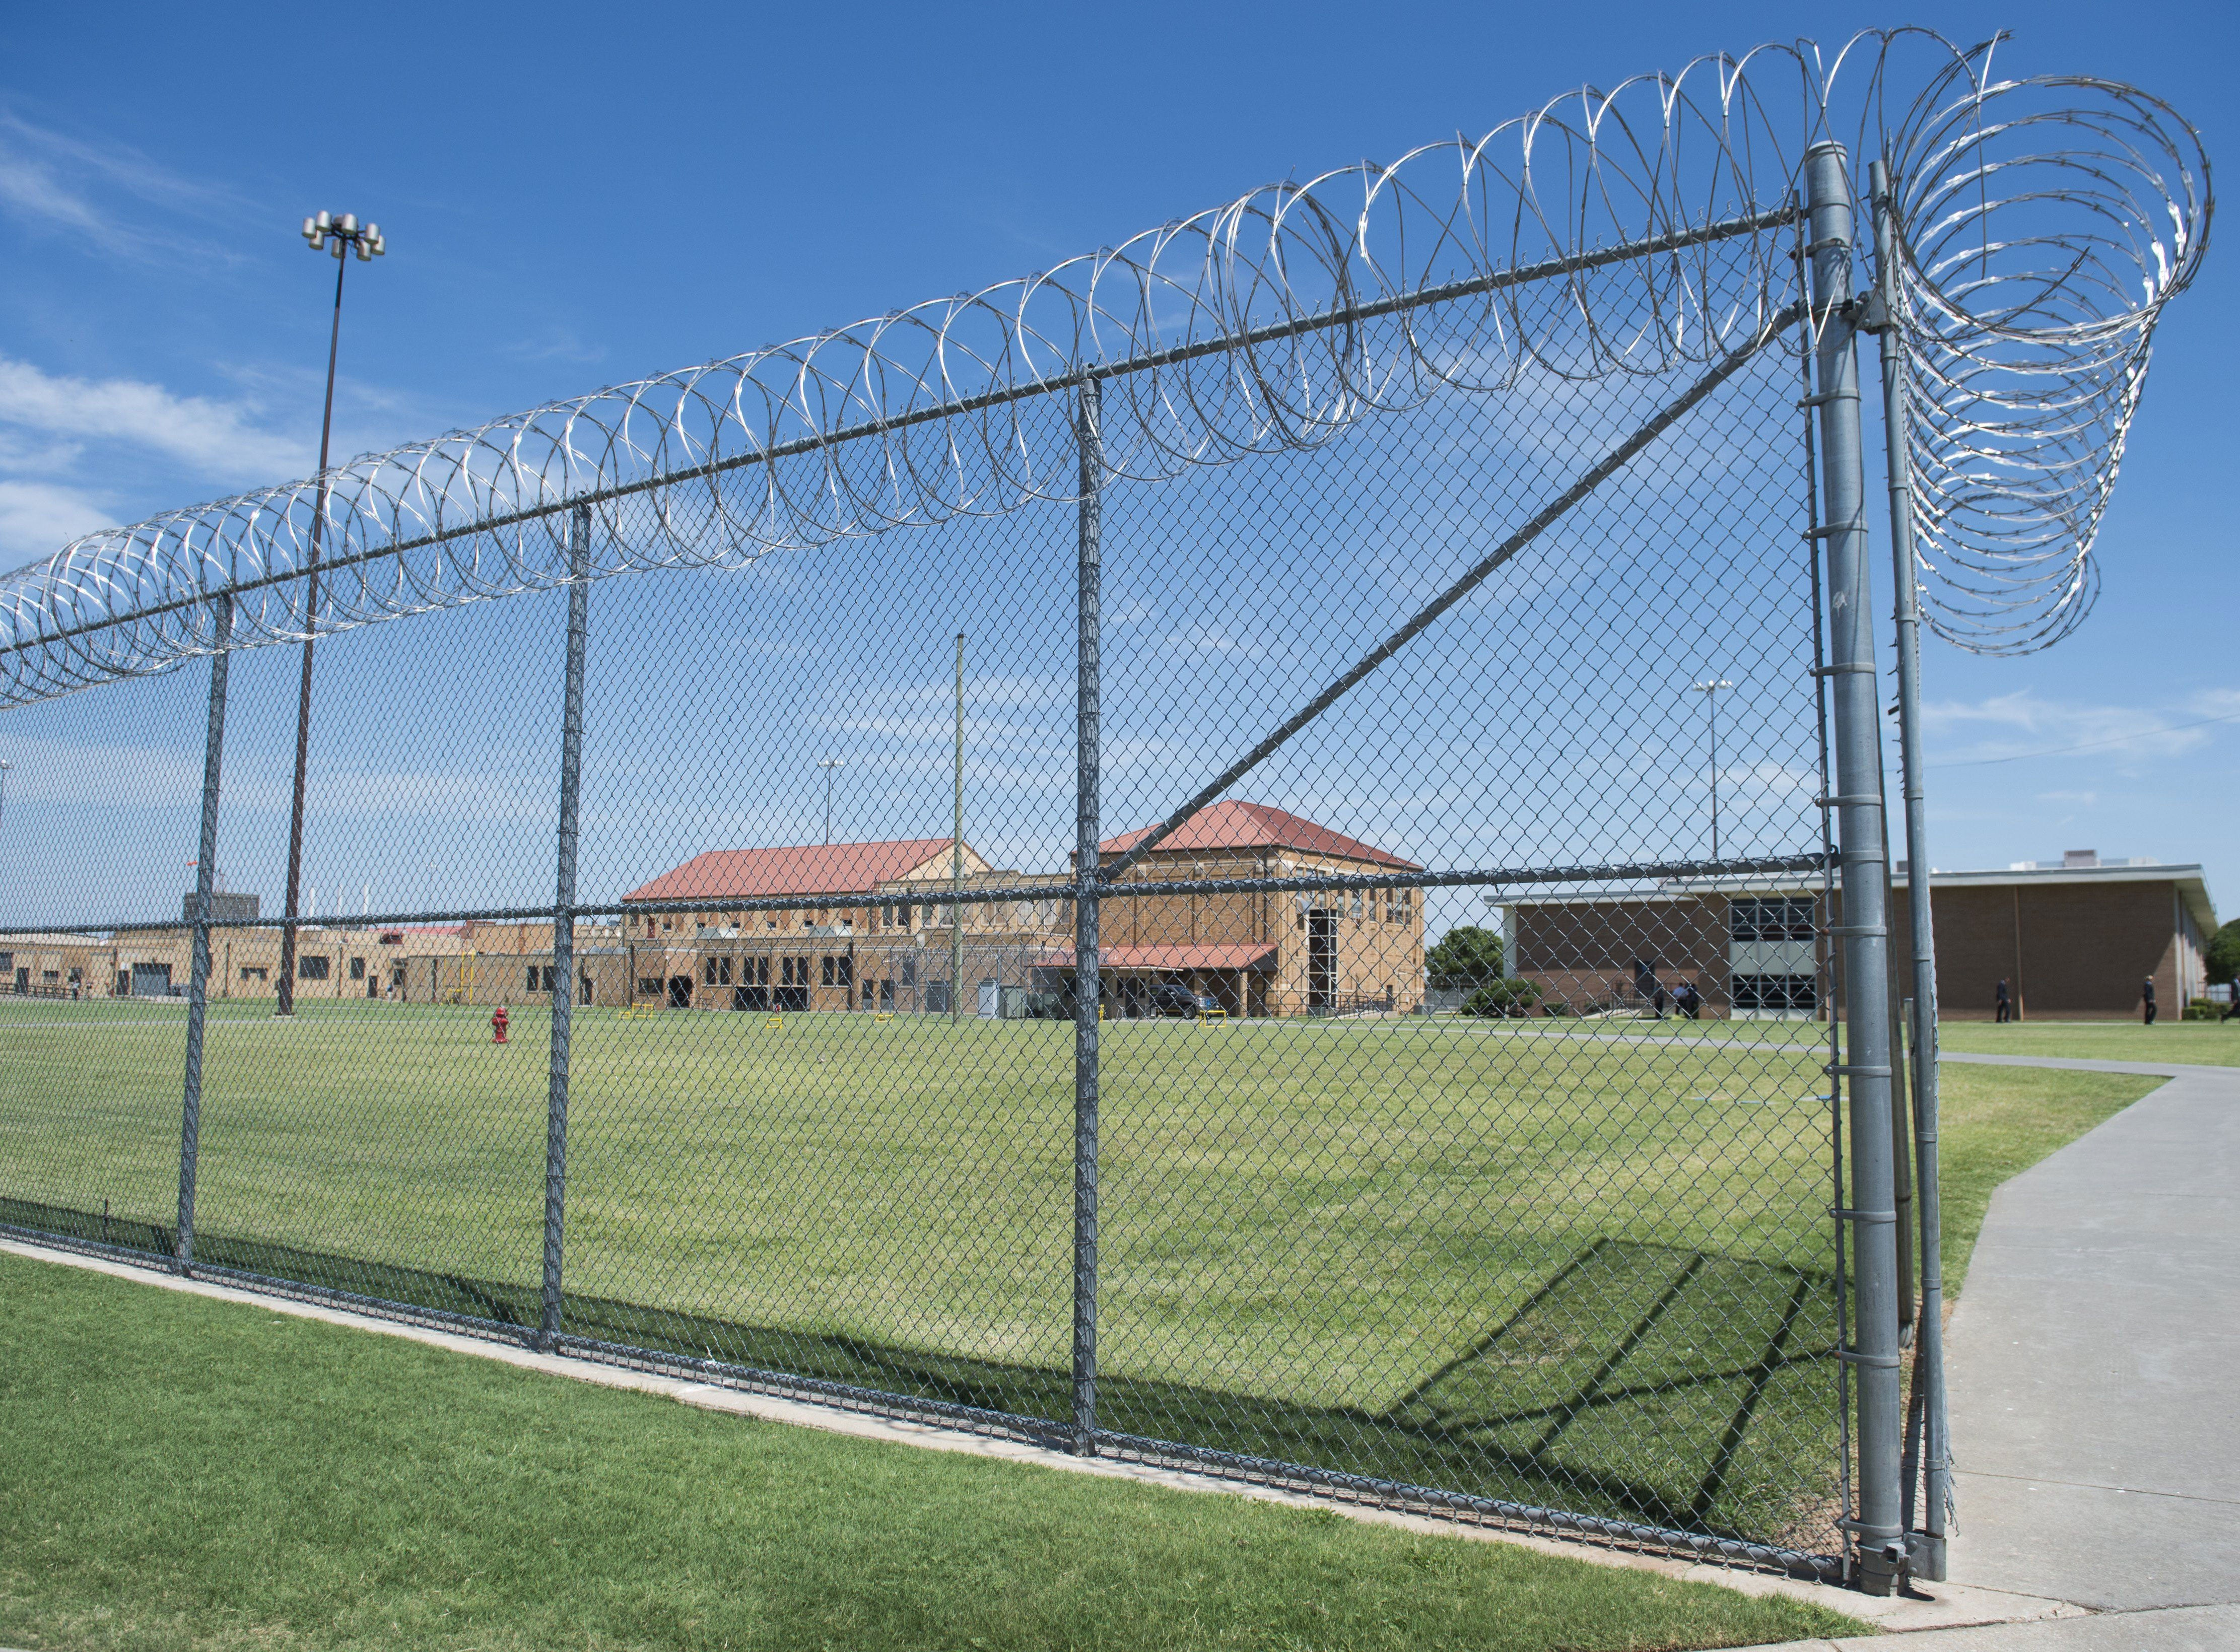 Study Finds Minor Offenses Land Black Women in Jail at Higher Rate